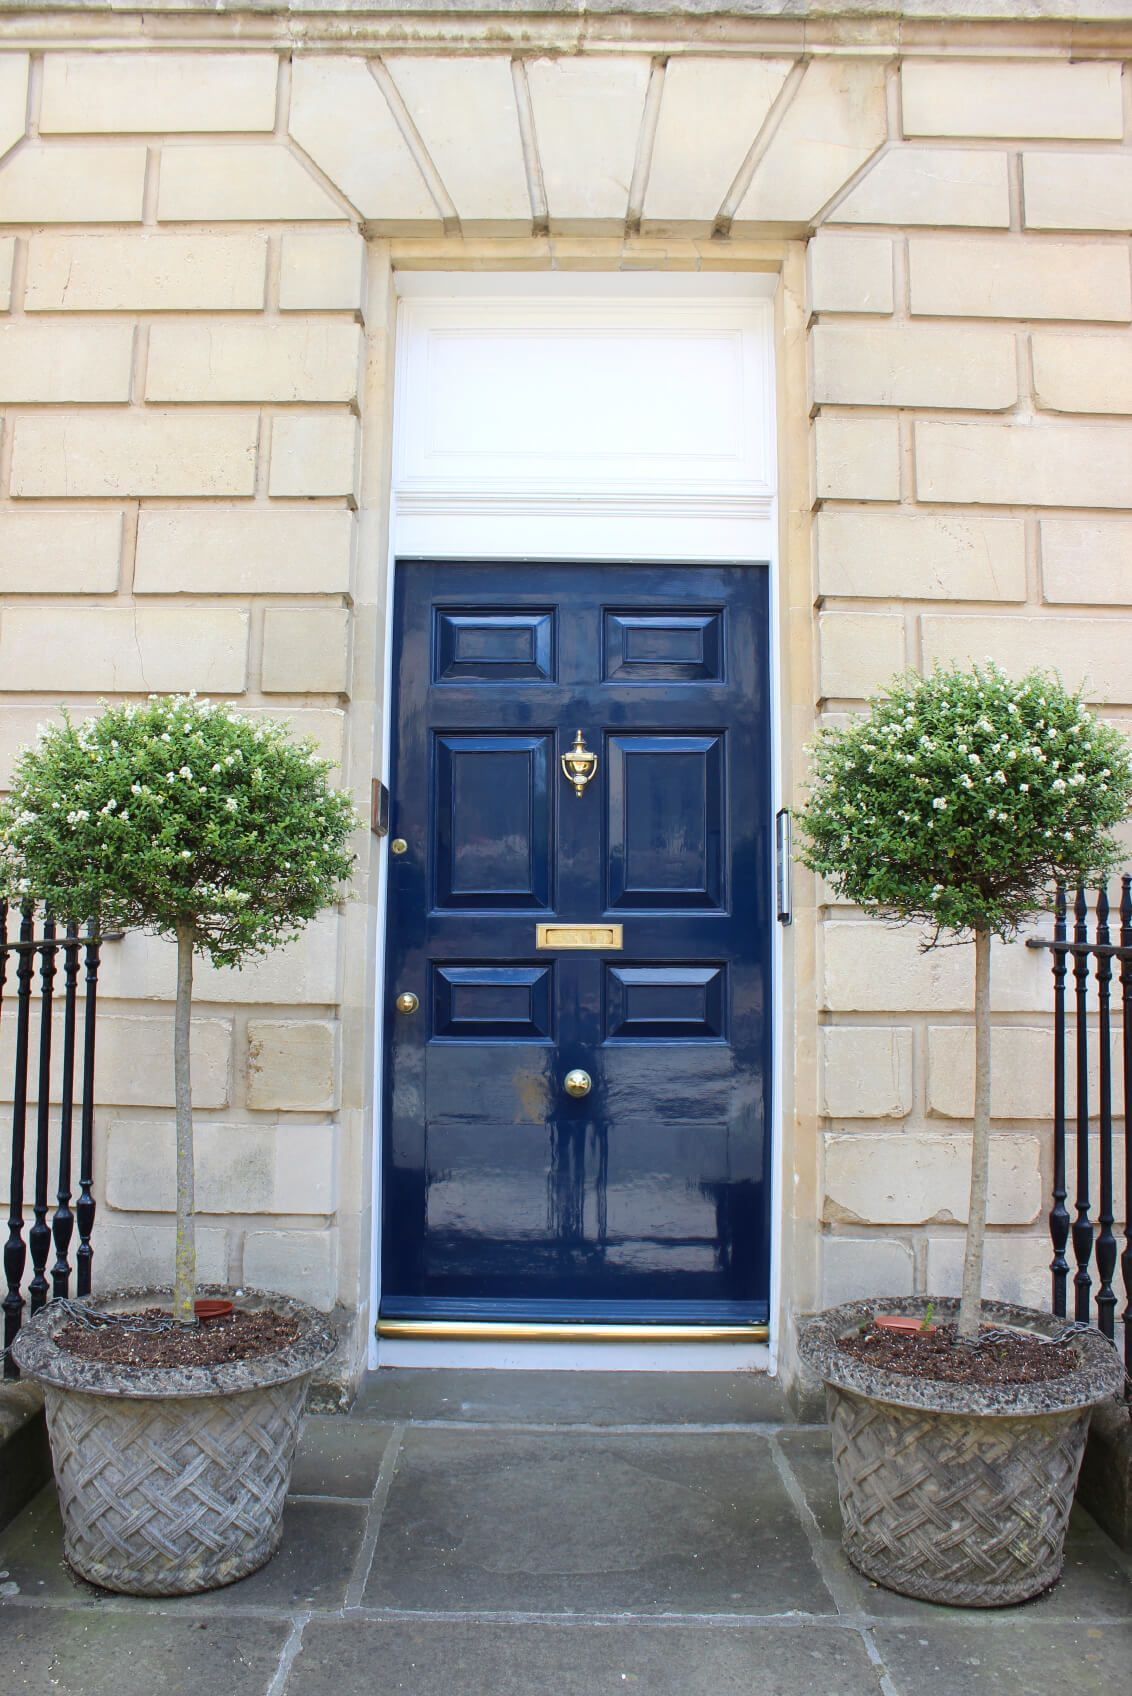 21 Cool Blue Front Doors for Residential Homes   Steel fence, Main ...